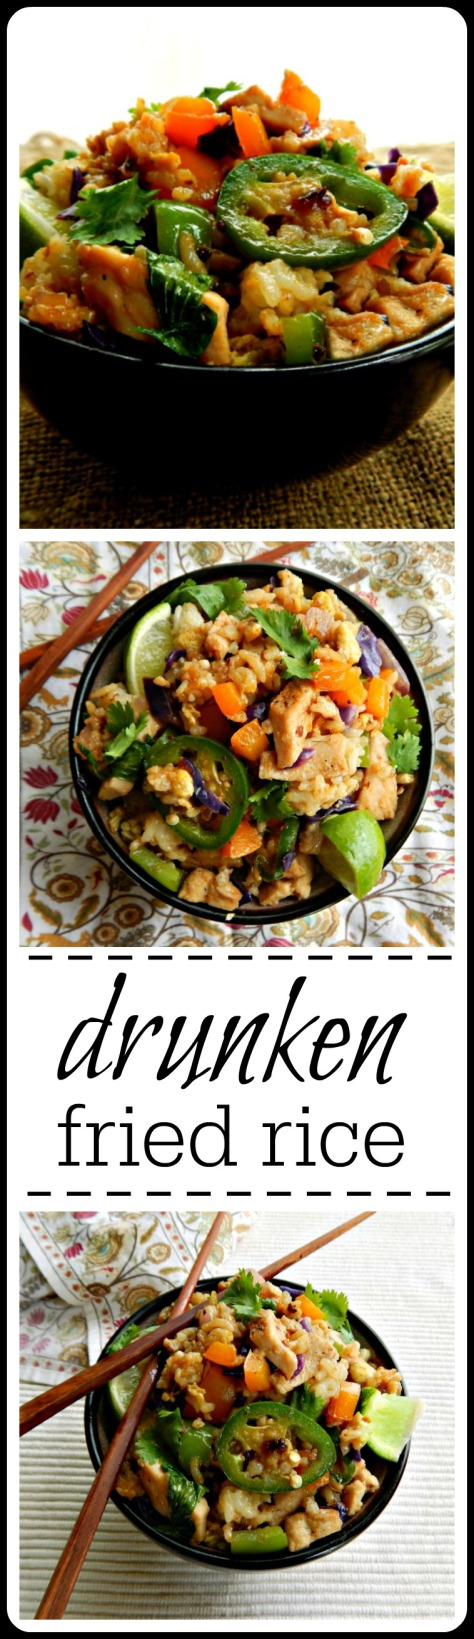 Drunken Fried Rice - Yes there IS such a thing and thank goodness because it's amazing! Just like drunken noodles but use leftover rice.